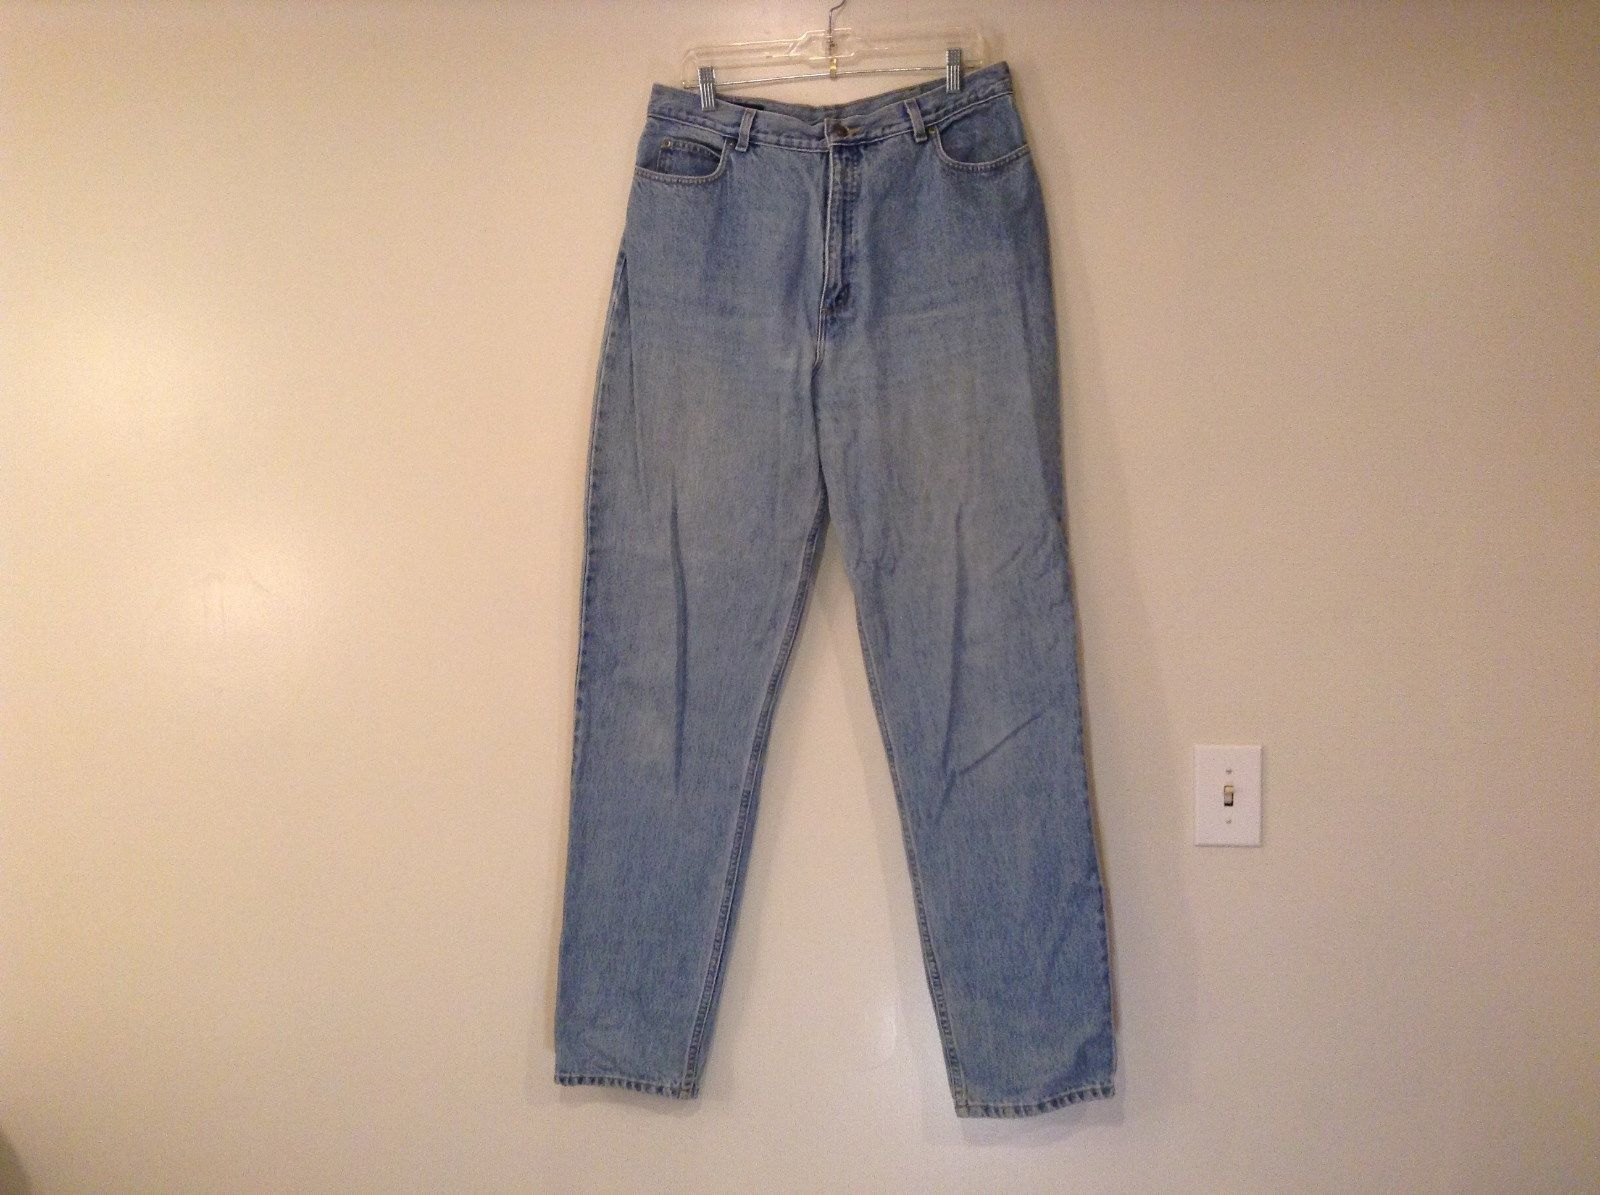 Light Wash Denim Jeans Size 16 Tall Lands End 100 Percent Cotton